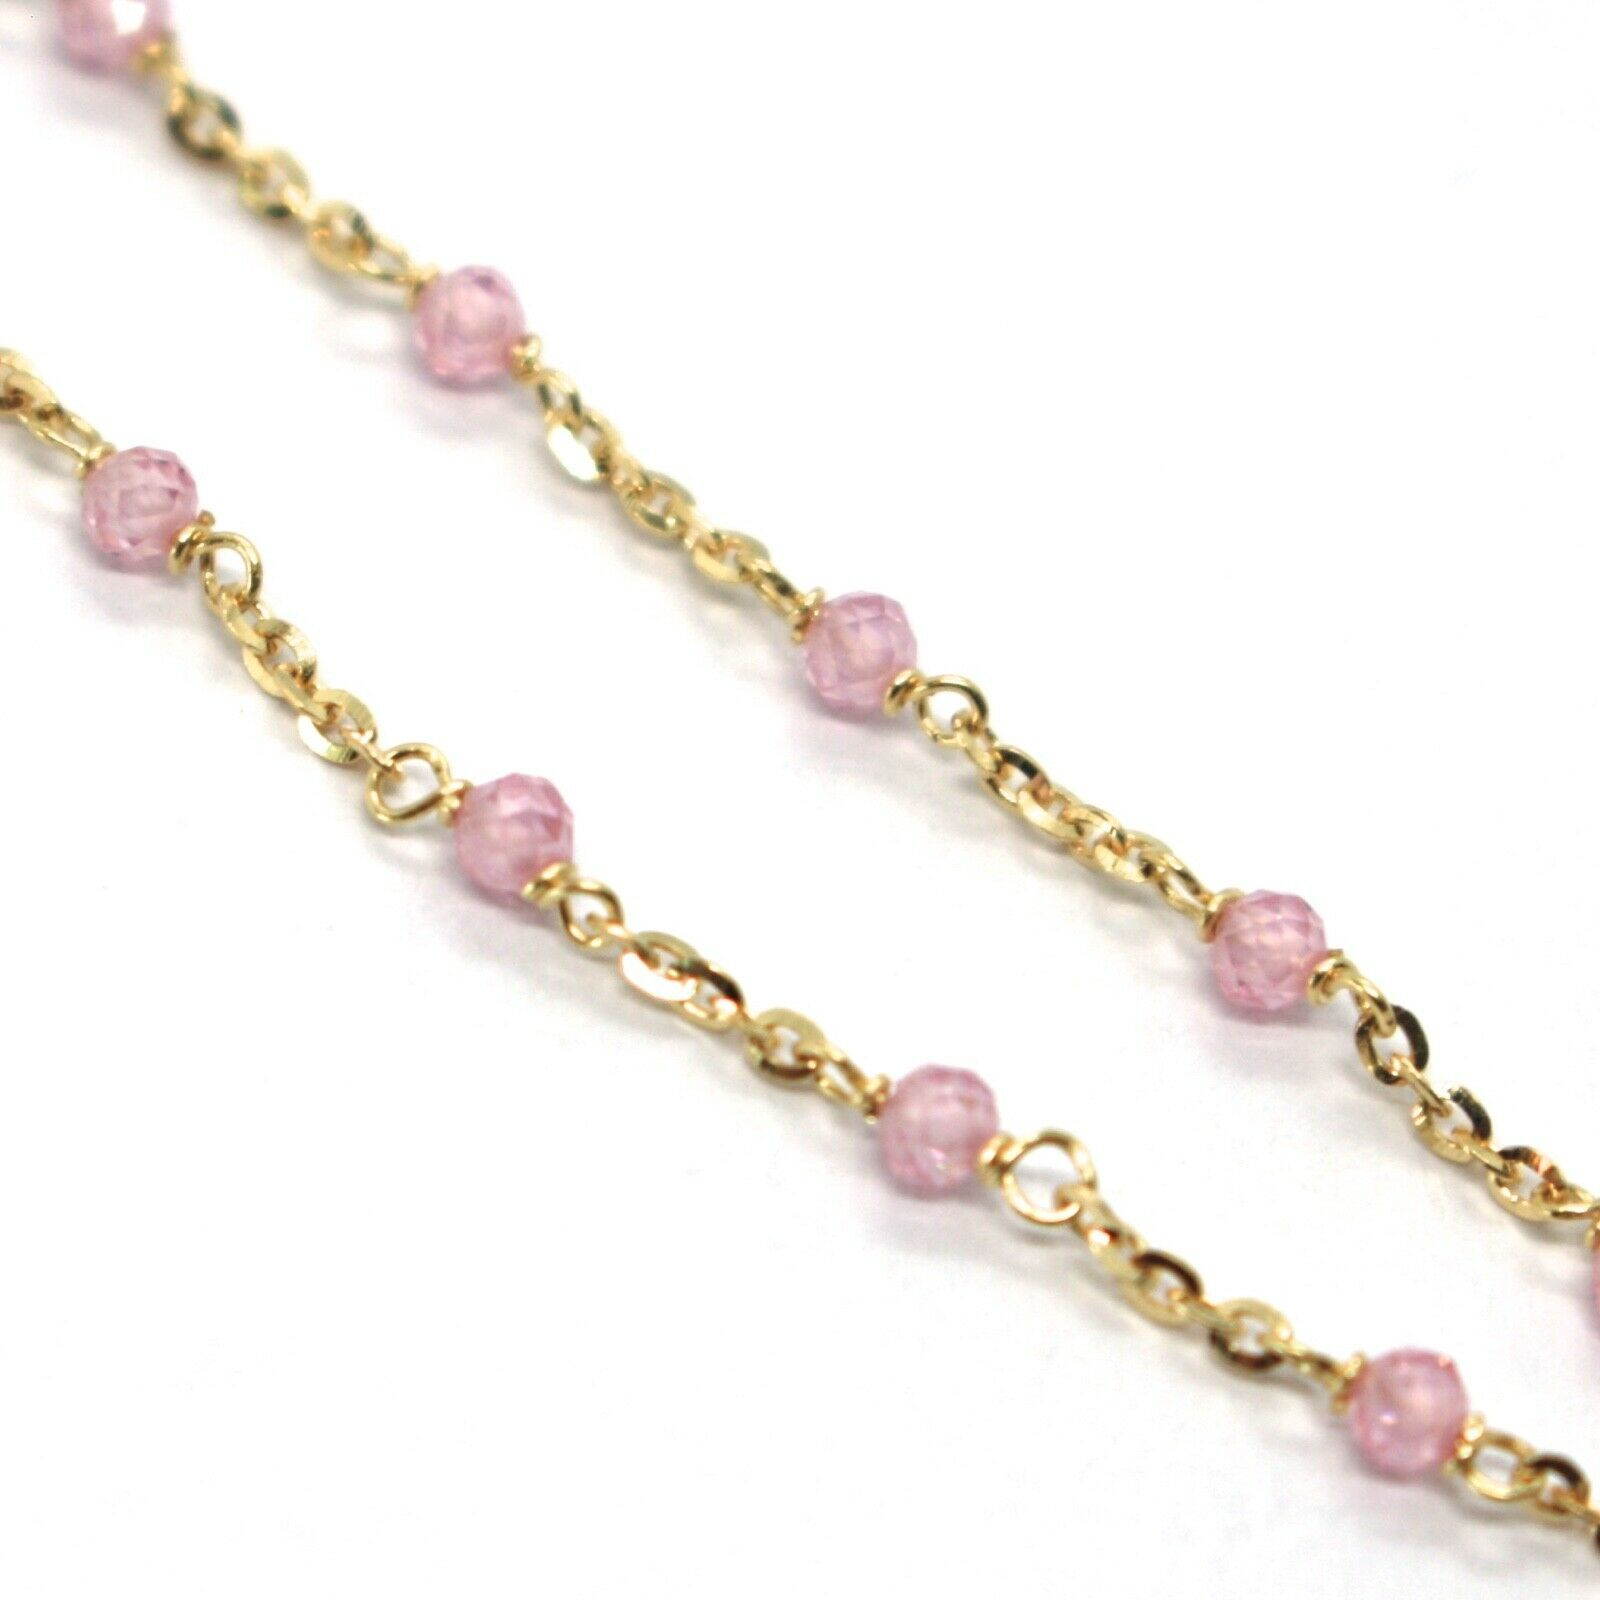 18K YELLOW GOLD BRACELET, PINK FACETED CUBIC ZIRCONIA, ROLO CHAIN, 6.9 INCHES